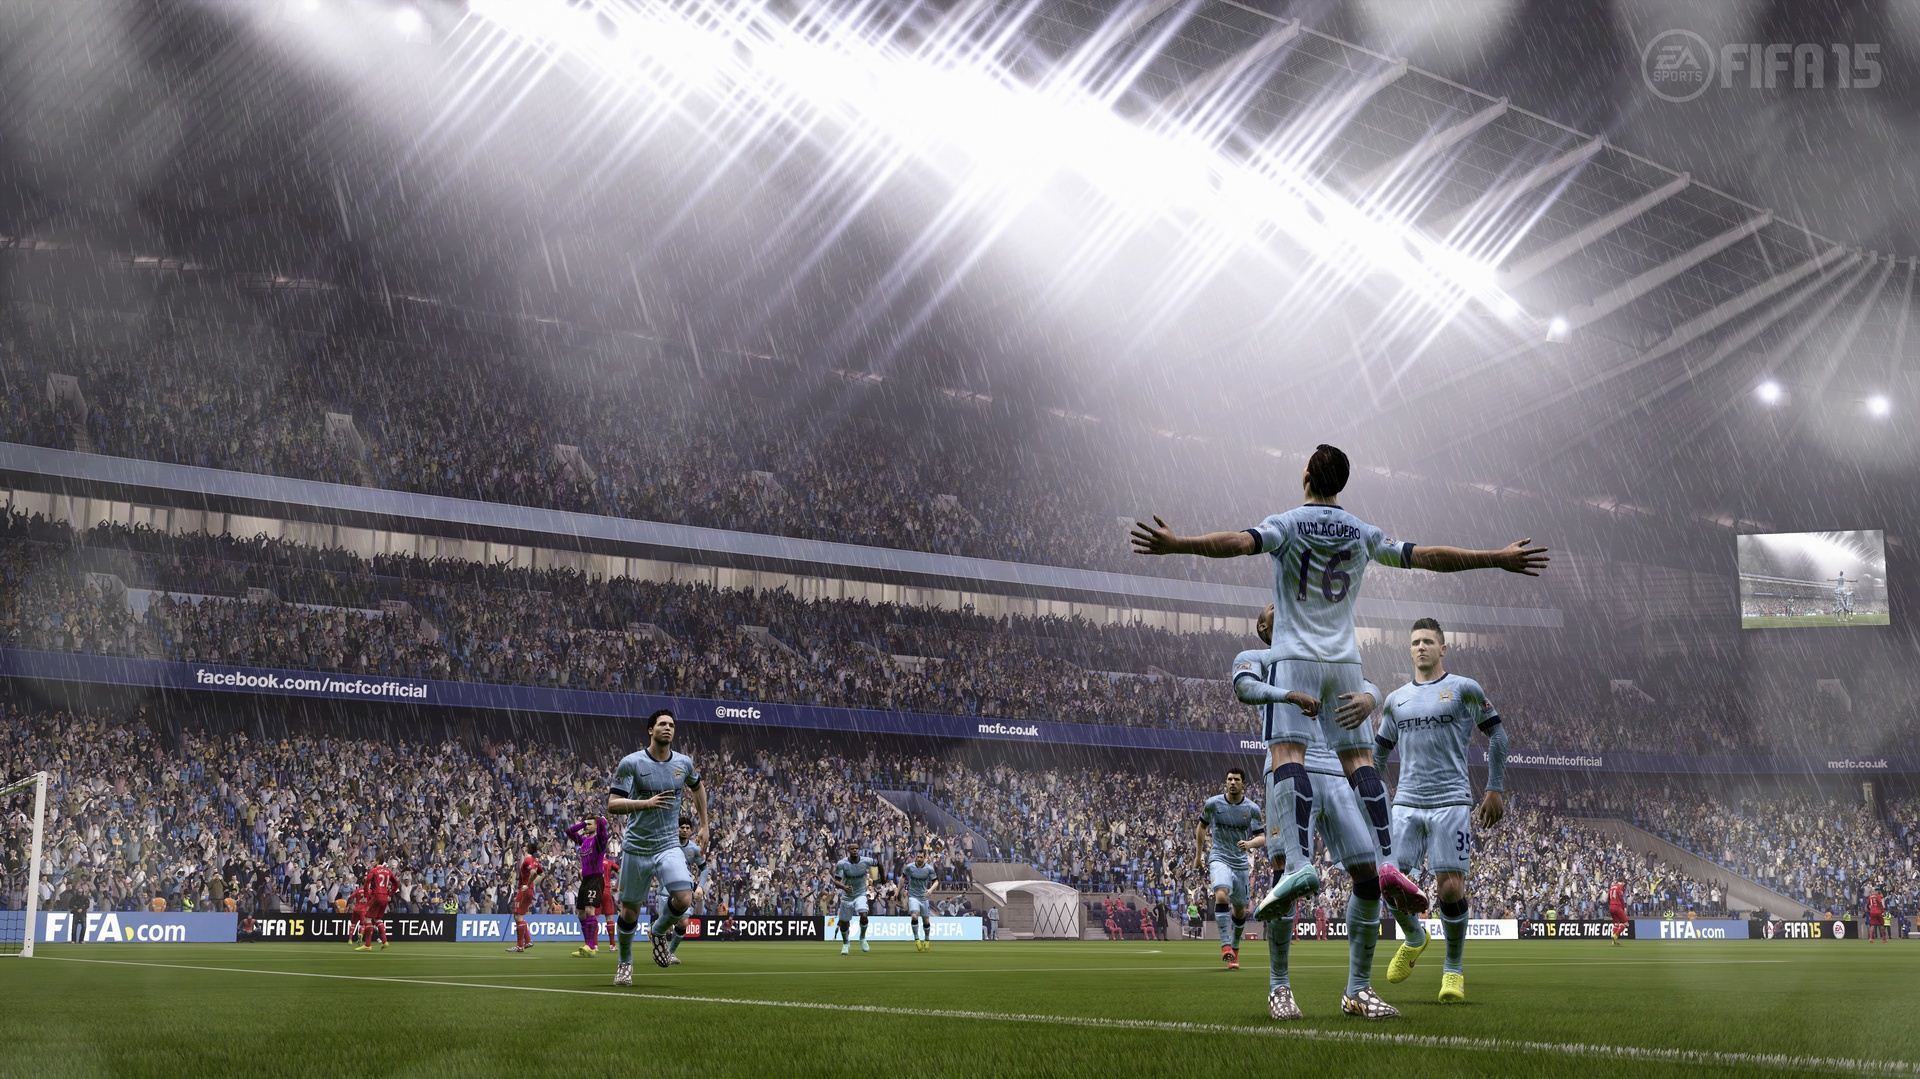 FIFA-15-Gets-Brand-New-Gameplay-Video-Showing-a-Full-Match-and-Gorgeous-HD-Screenshots-455304-4